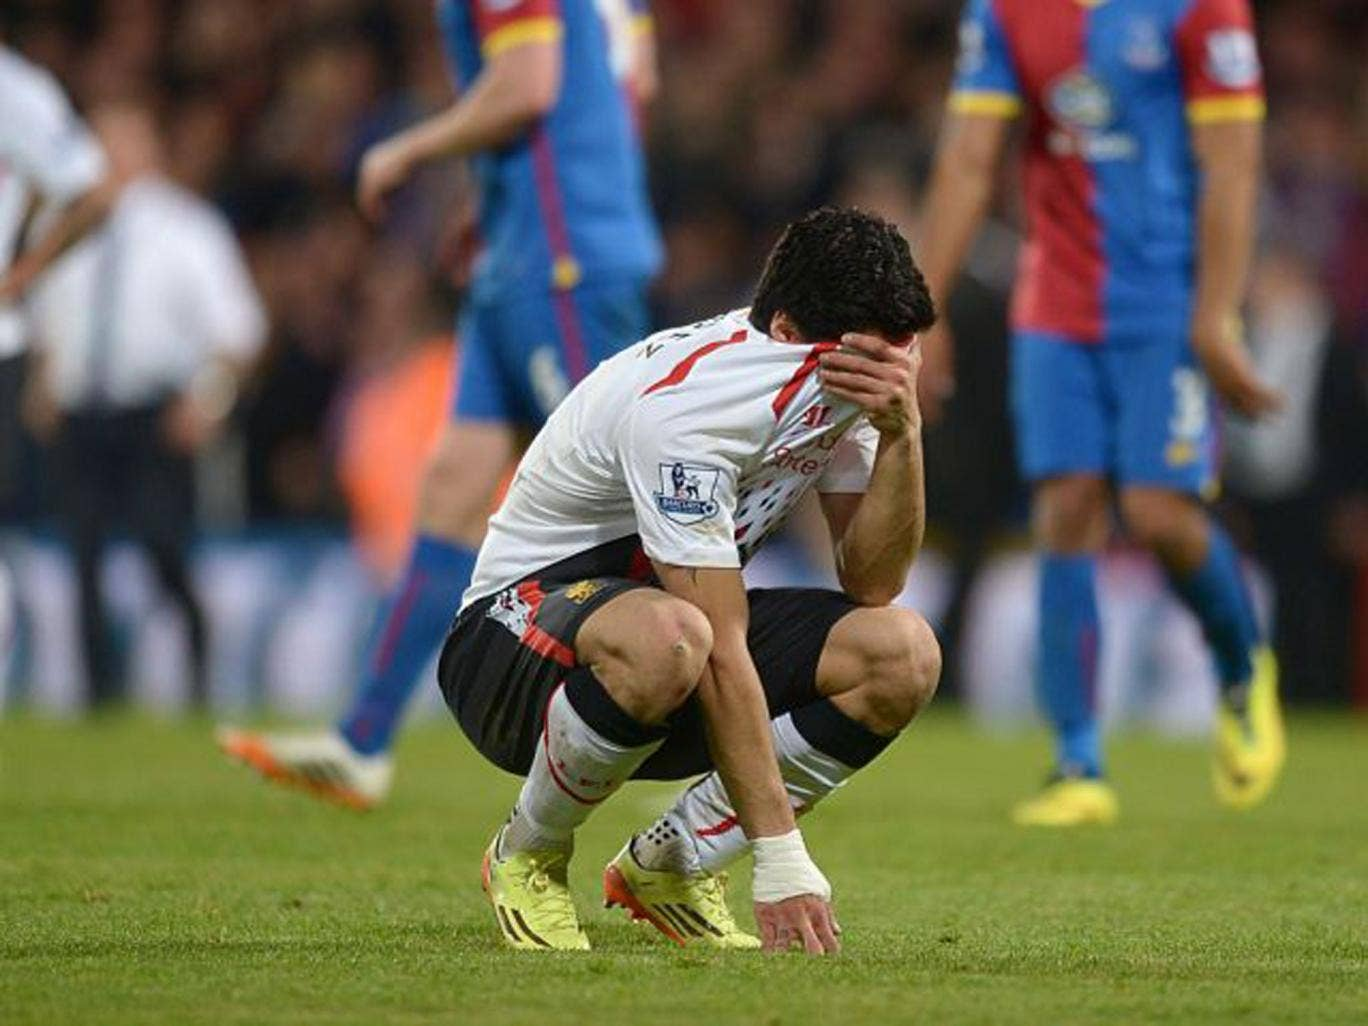 Liverpool striker Luis Suarez is distraught after drawing the match against Crystal Palace where the Uruguayan had equalled the record number of goals in a Premier League season